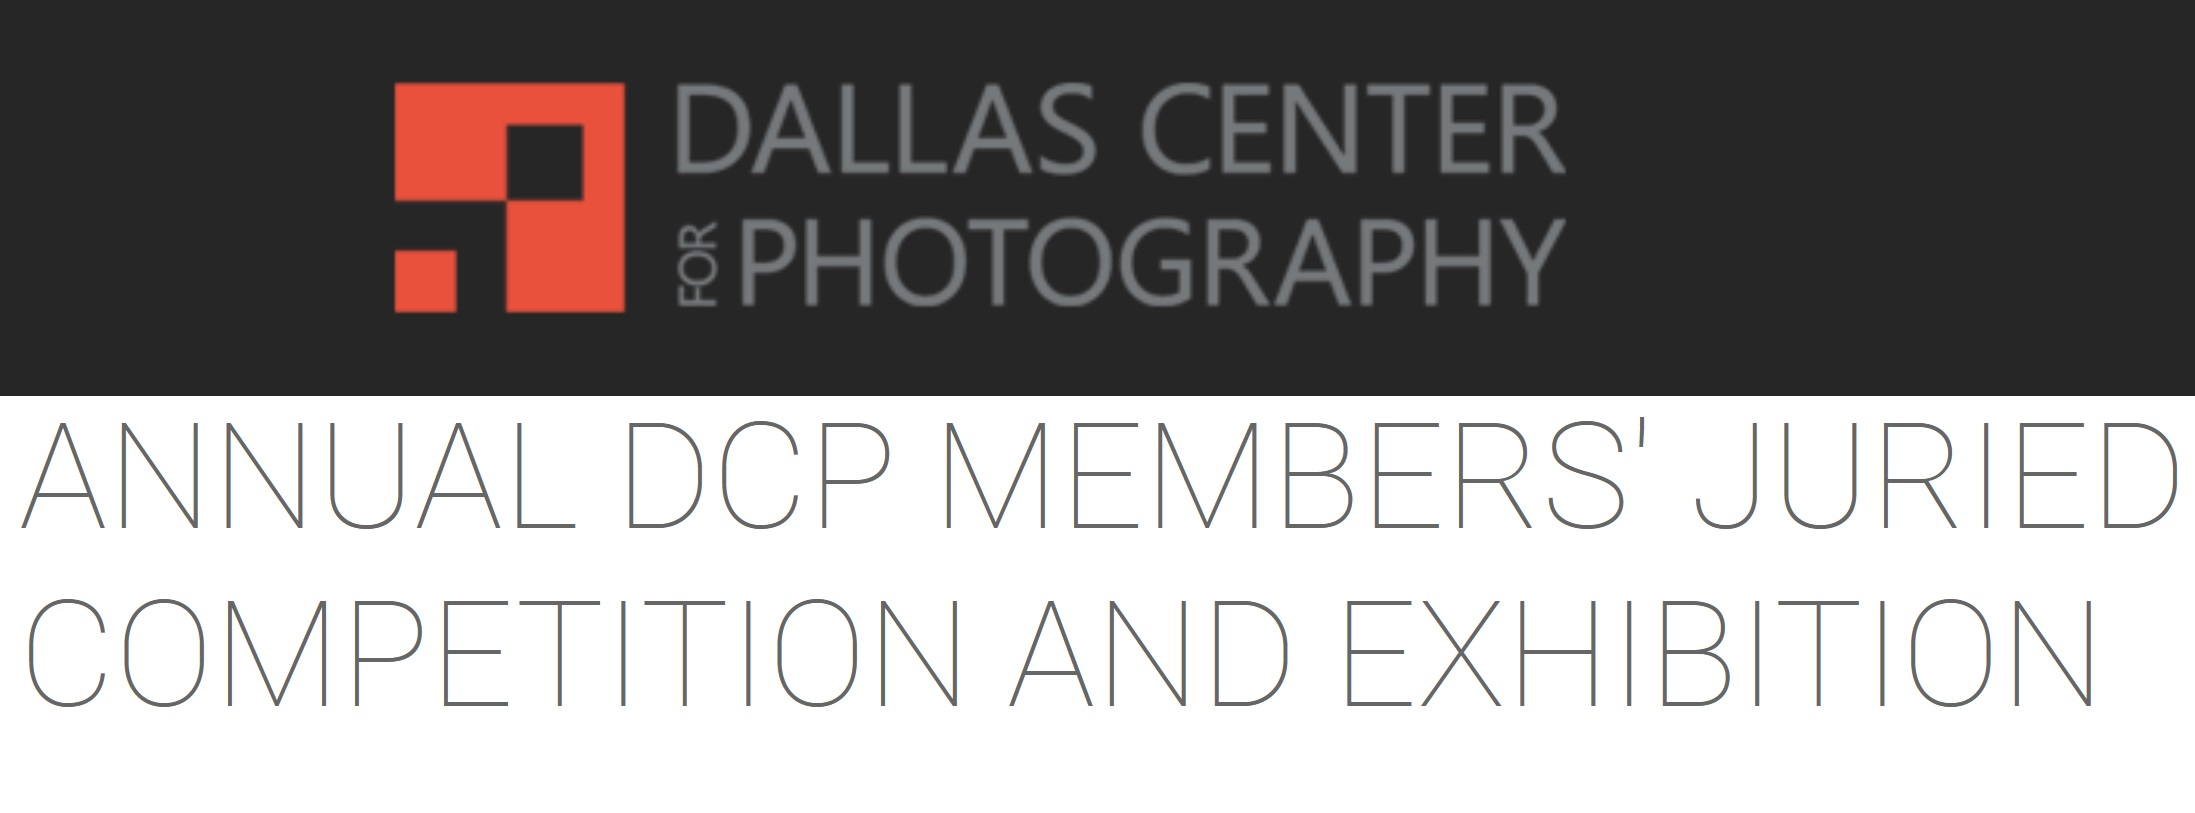 Annual DCP Members' Juried Competition and Exhibition - logo